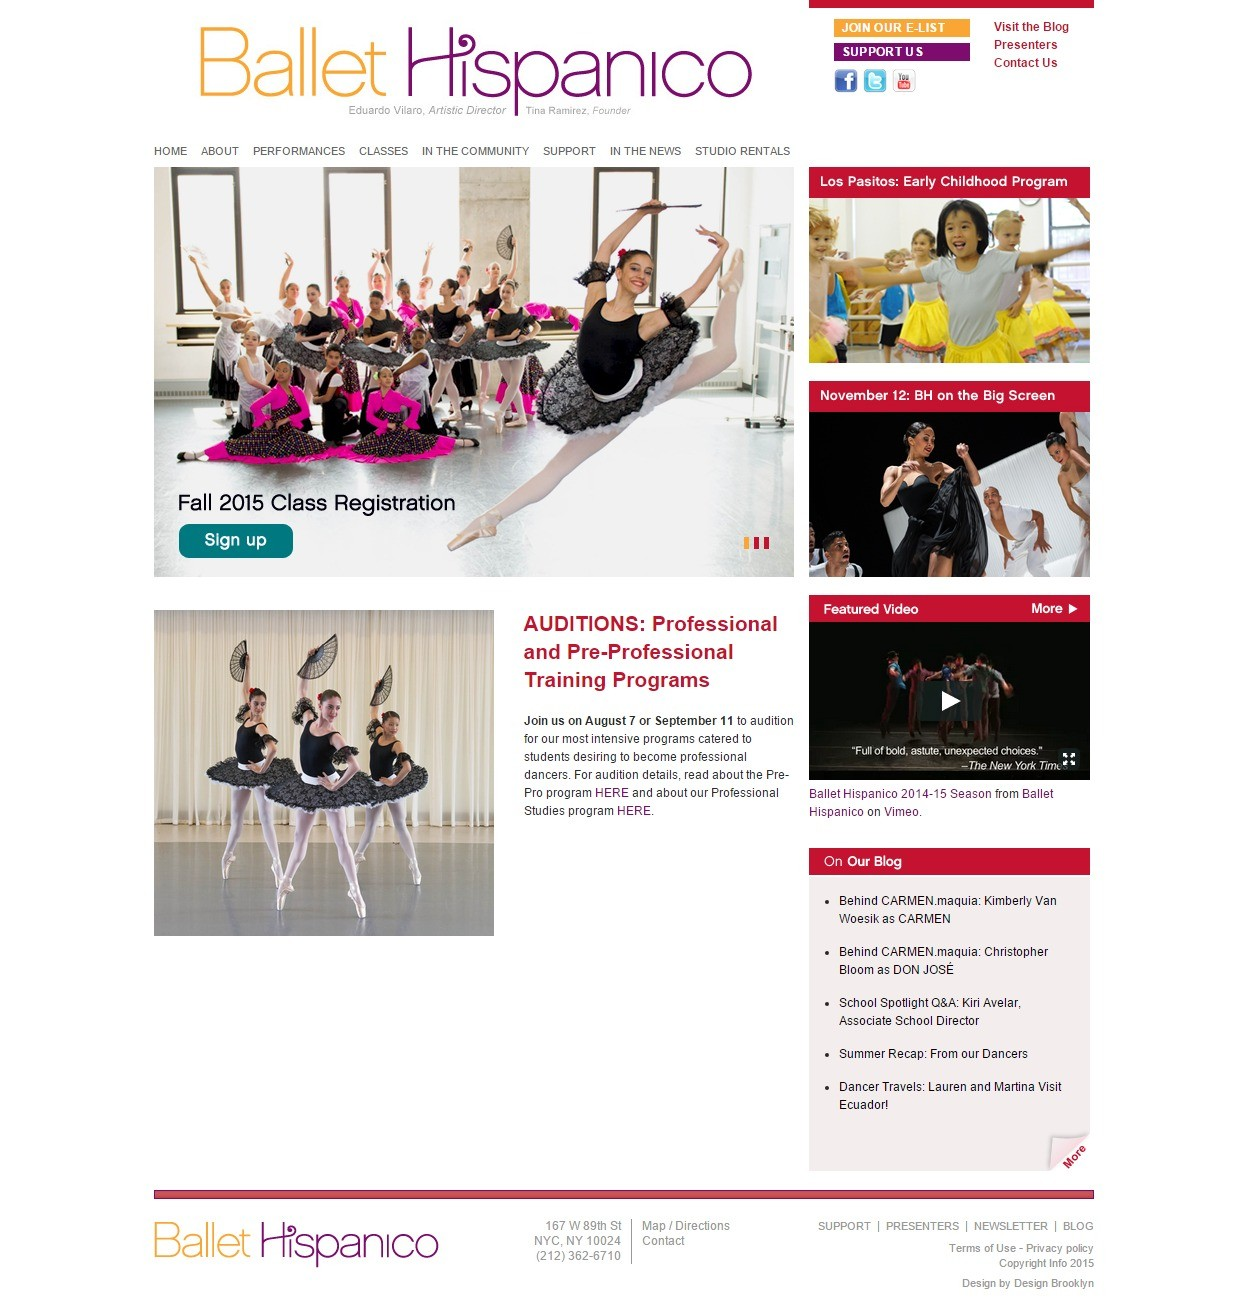 Ballet Hispanico Homepage